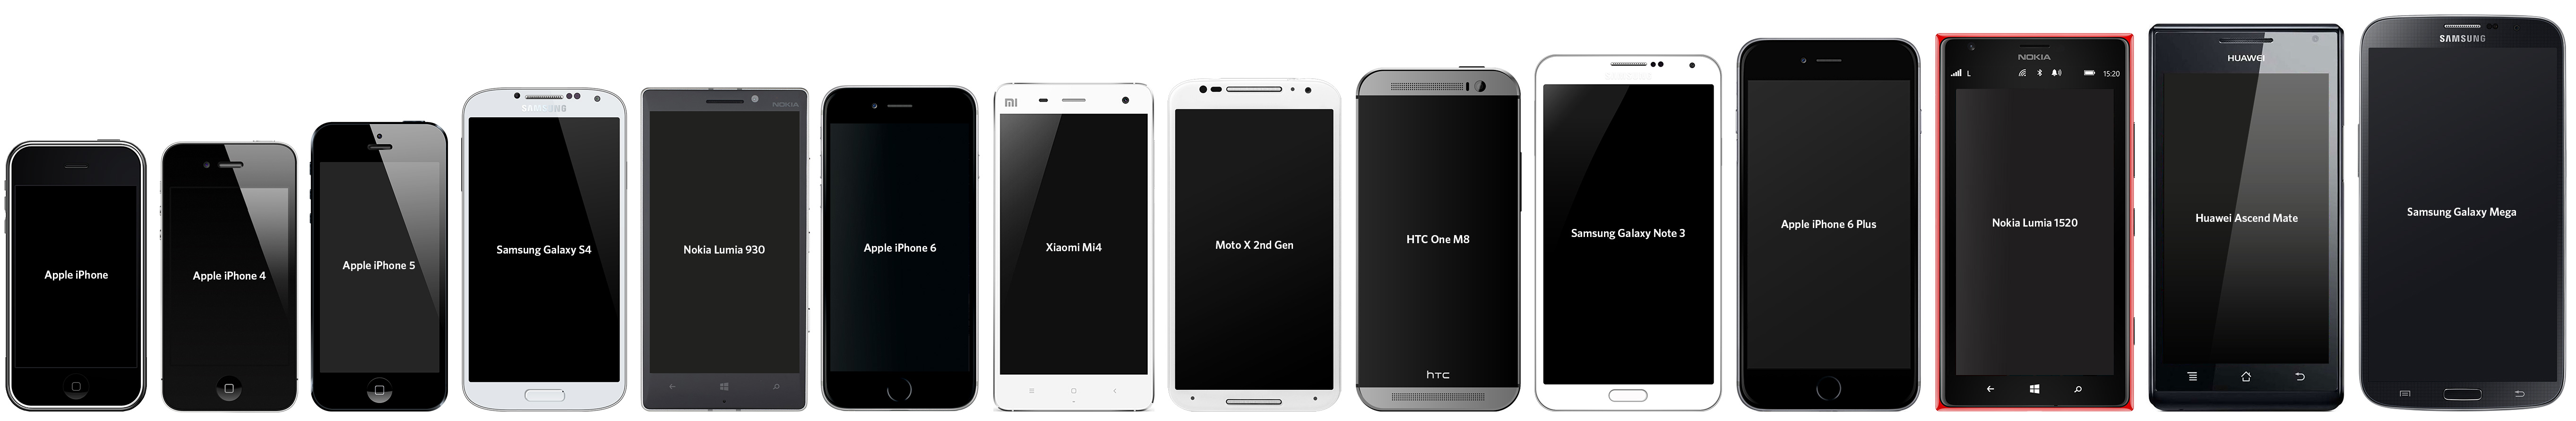 Smartphone sizes, from tiny to ludicrous. Click to embiggen! At 100 percent, the devices here should be pretty close to actual size on most monitors.